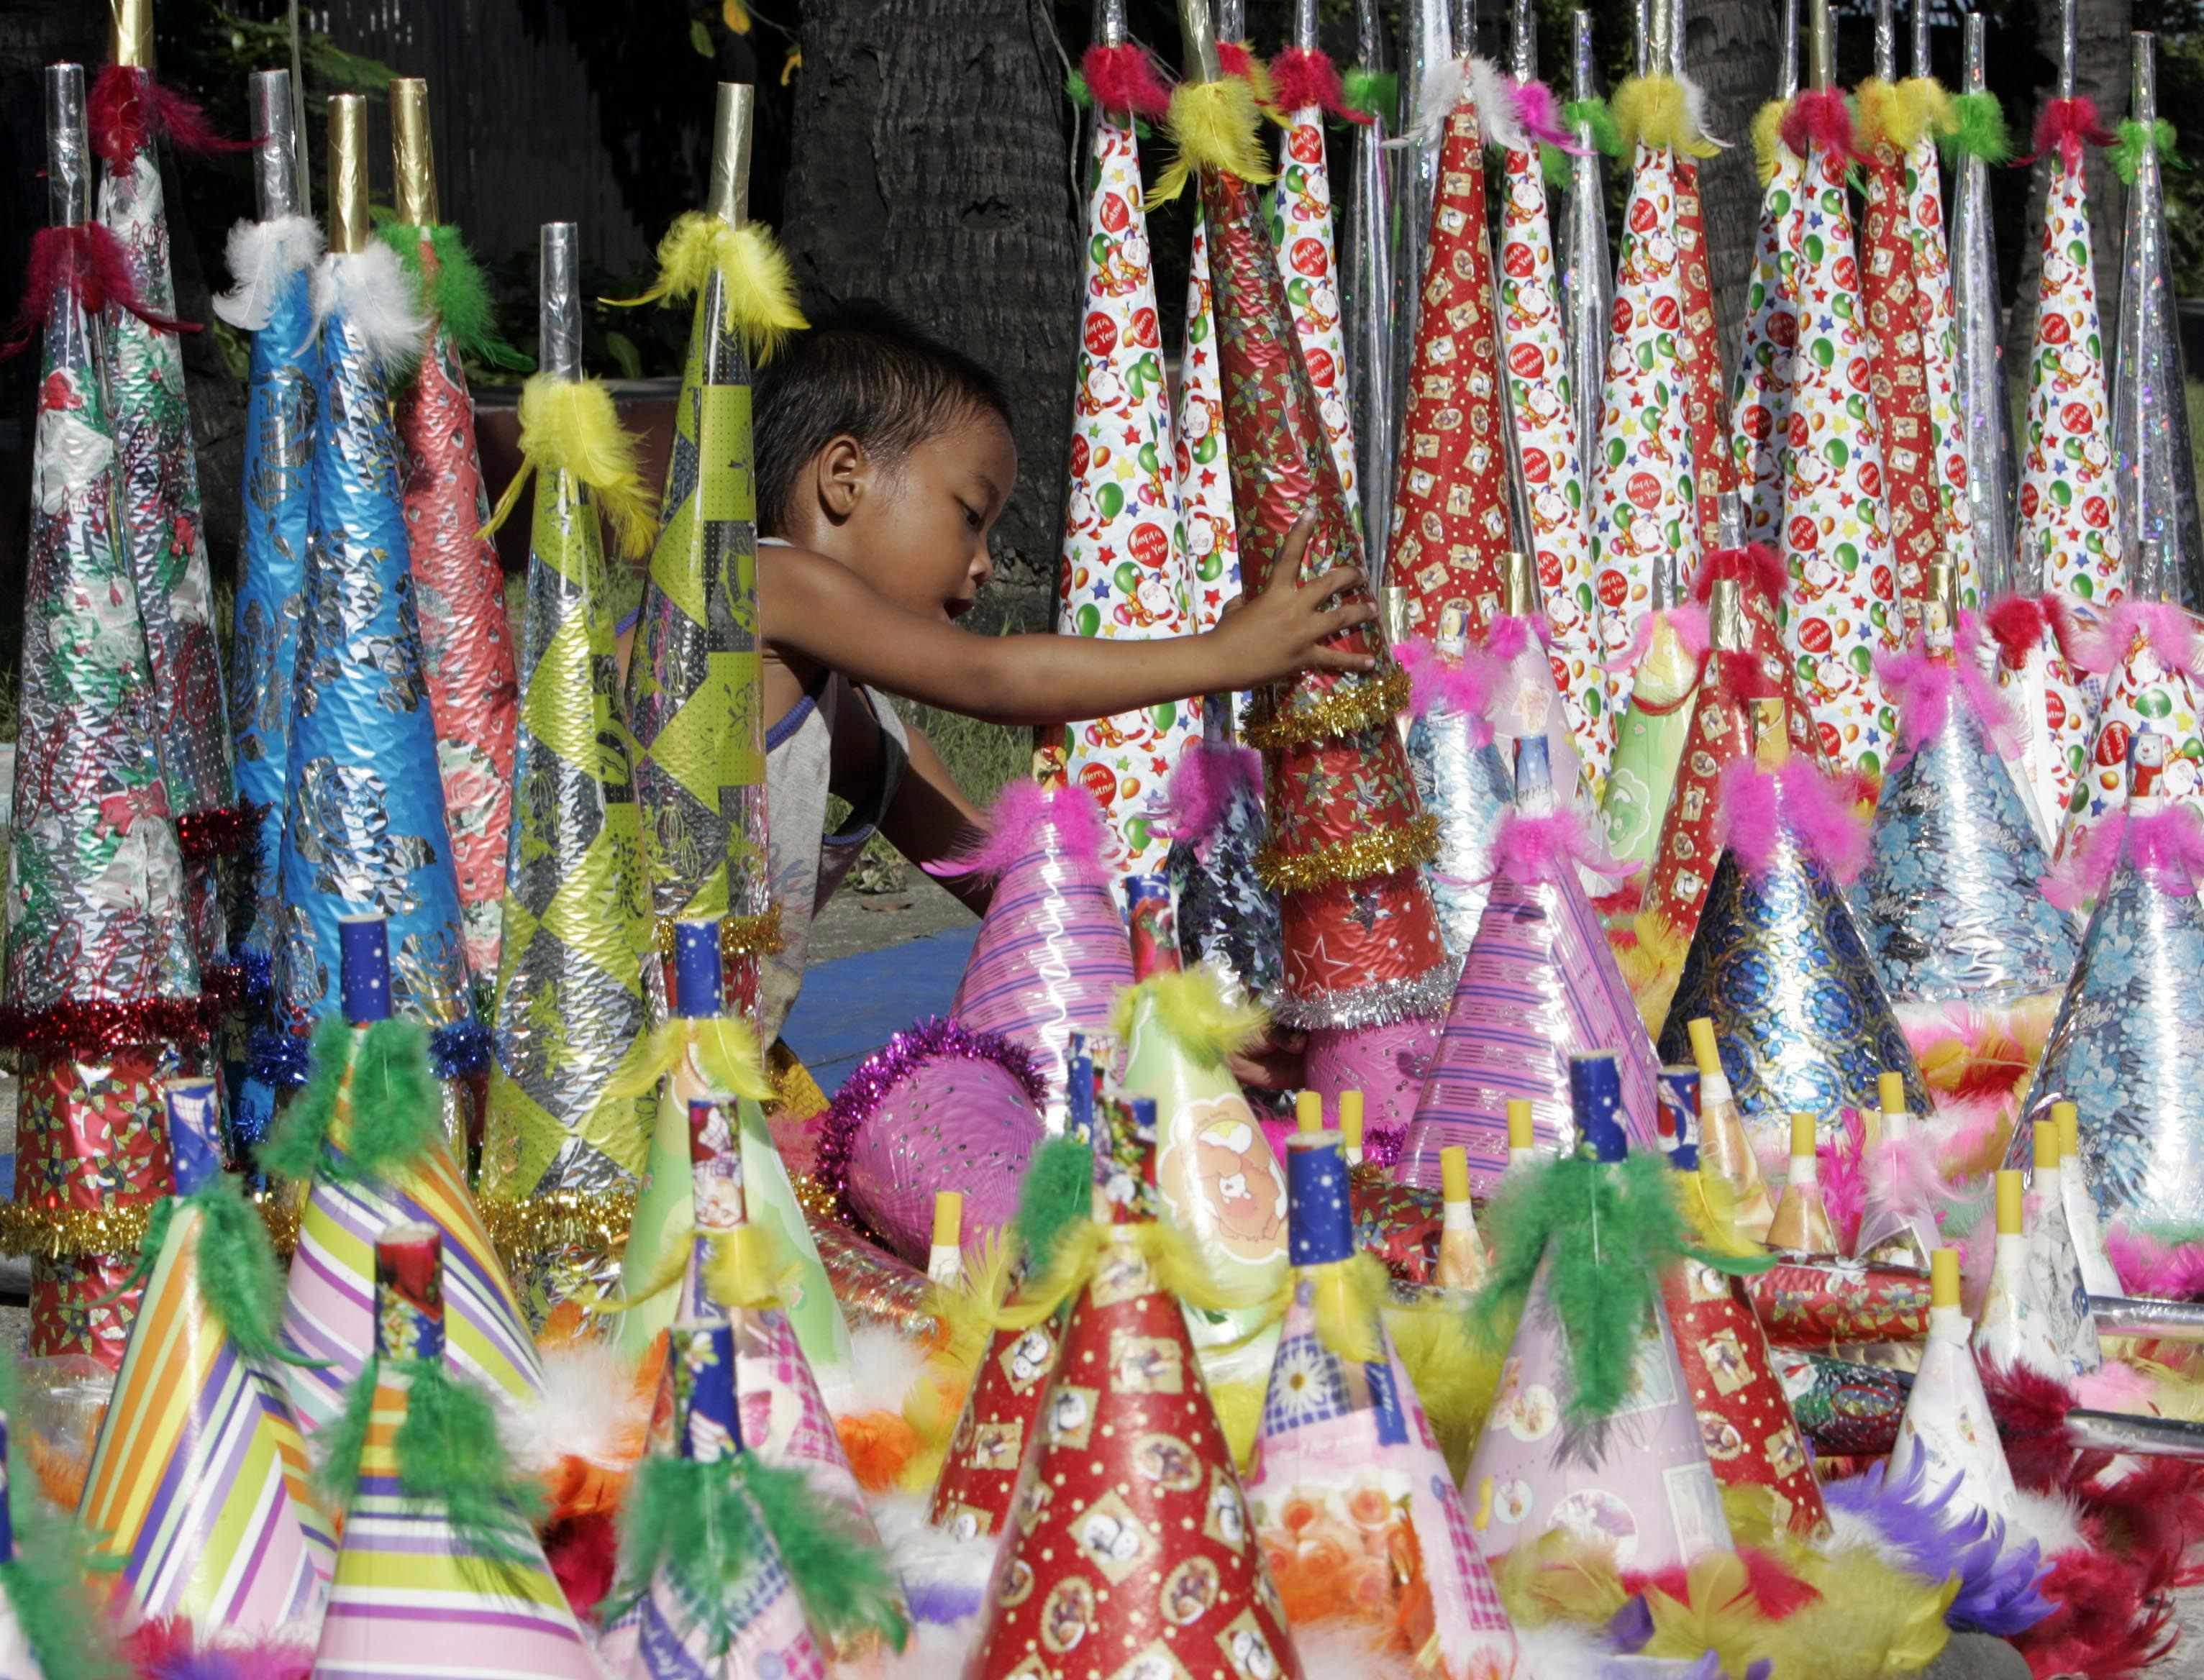 A boy stacks up blow horns made of cardboard and plastic sold by his mother for 30 cents per piece along a sidewalk in preparation for New Year celebr...